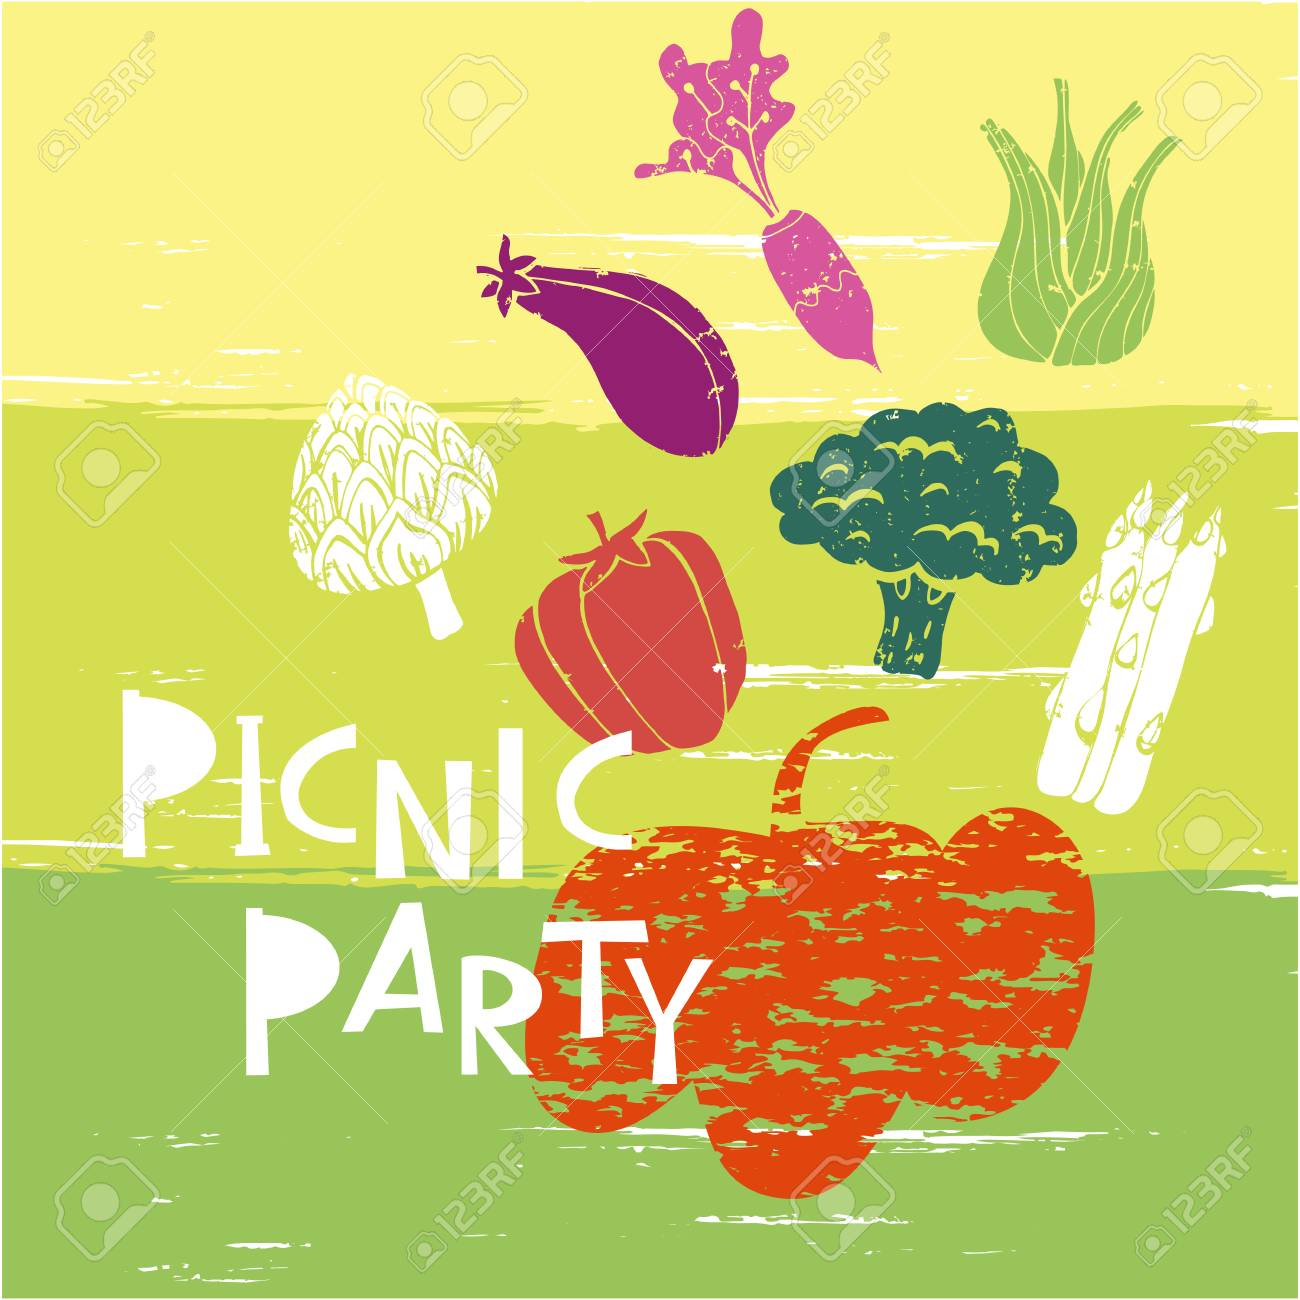 summer picnic party template poster party invitation card